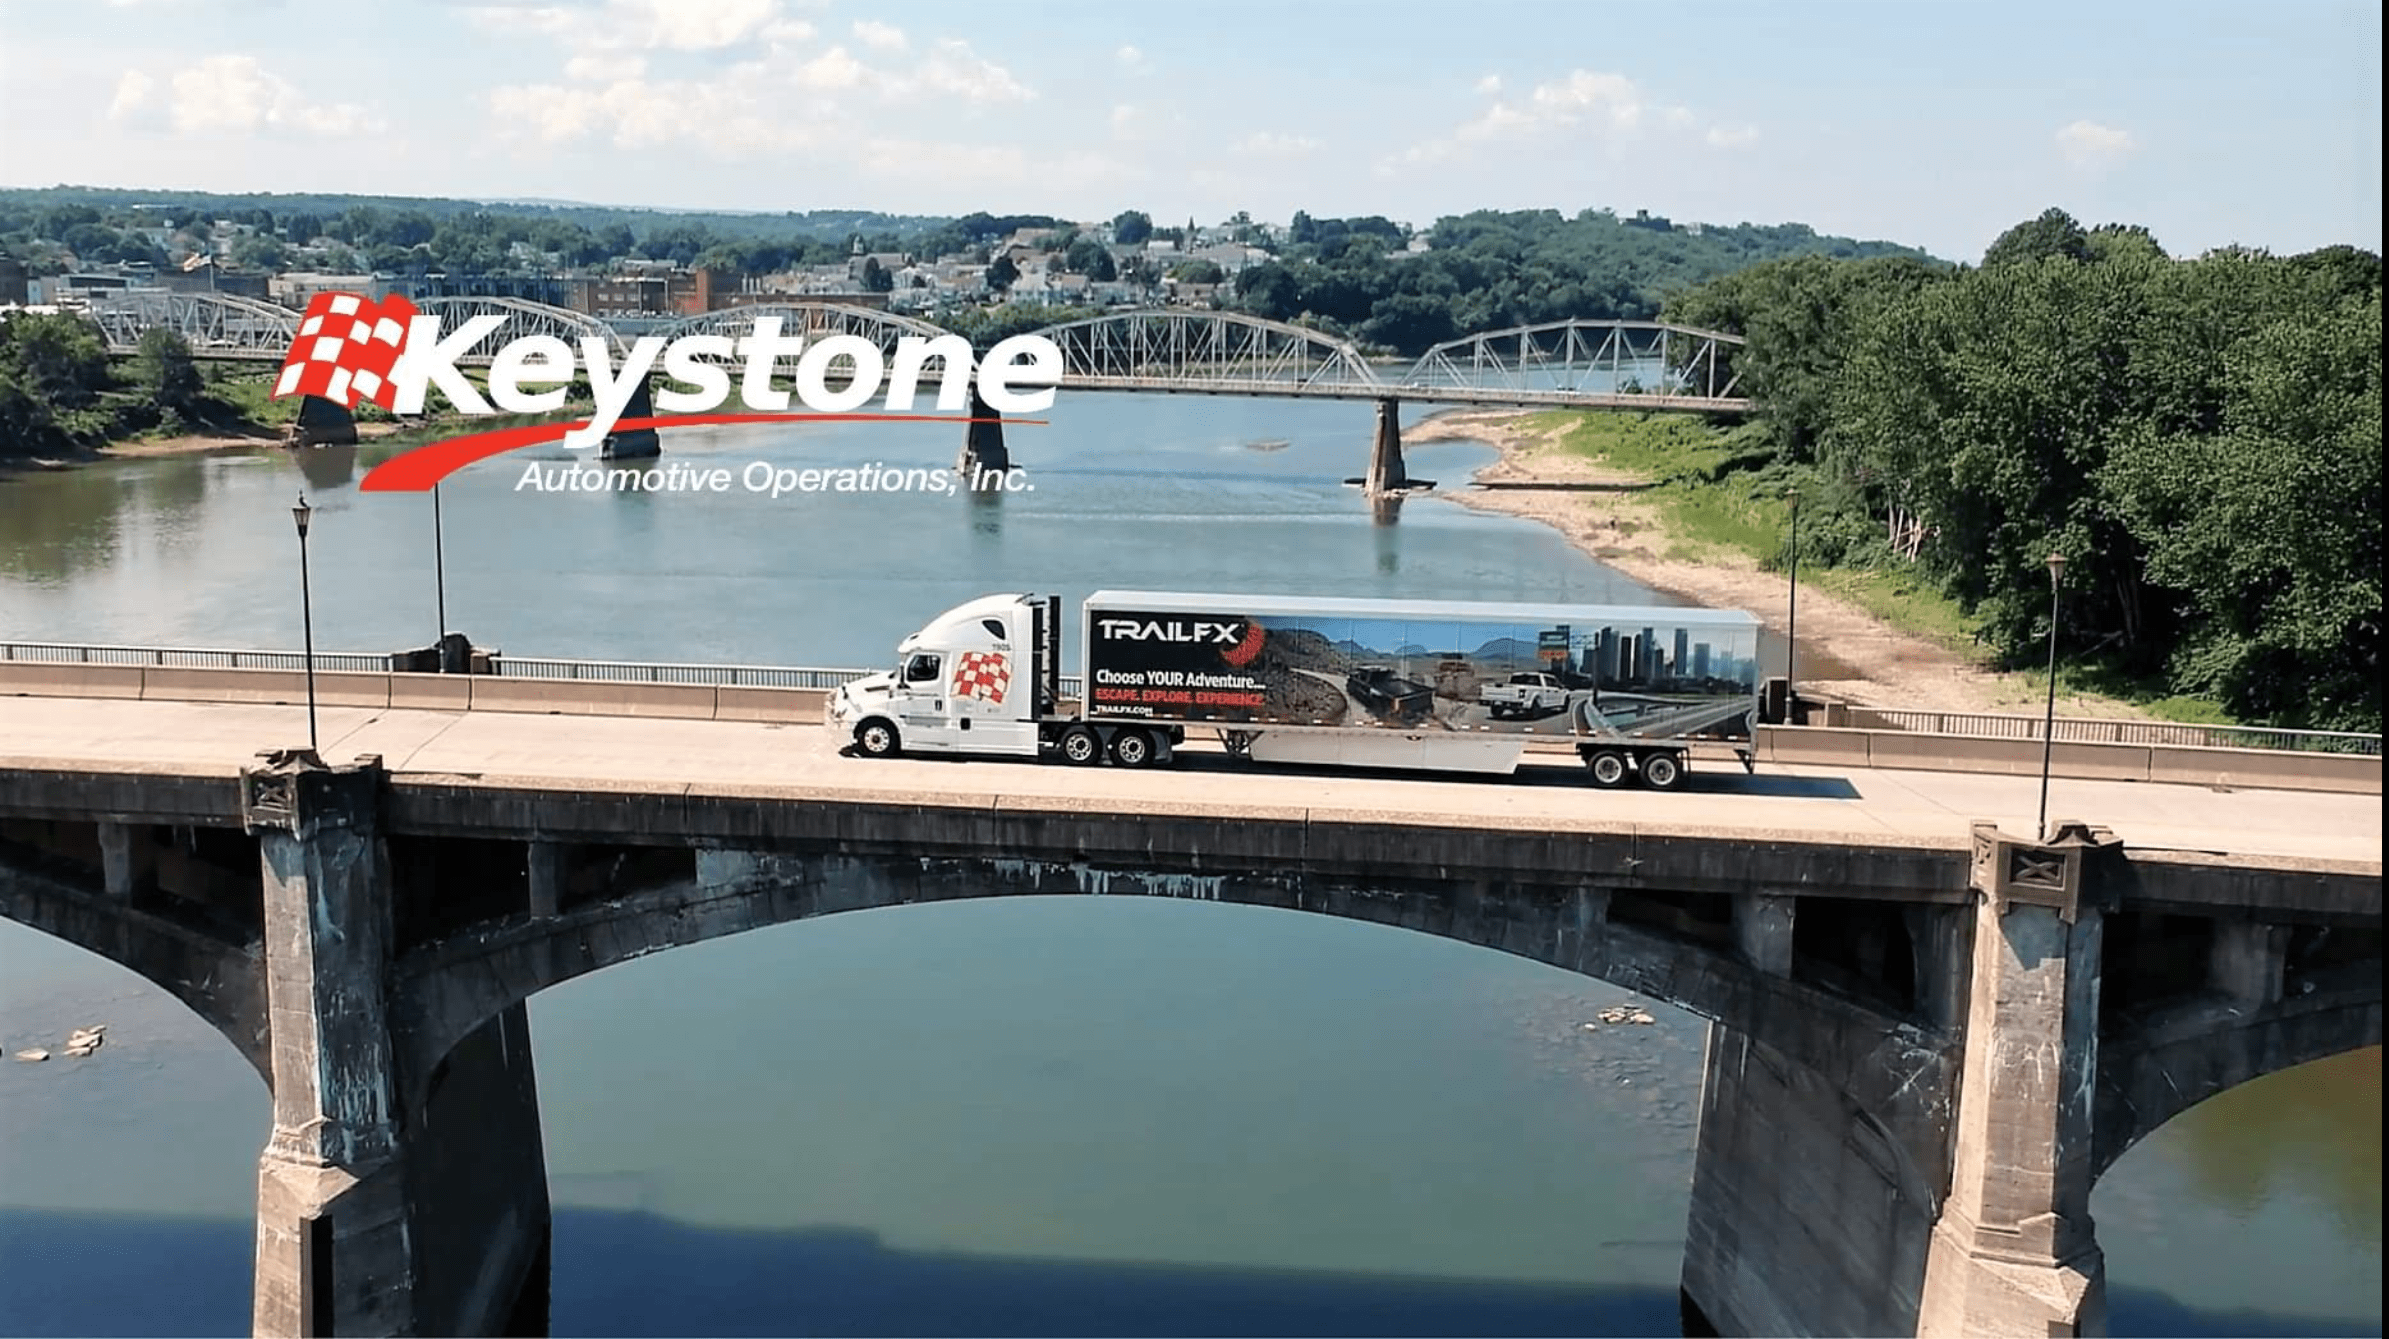 Keystone Automotive Operations distributor